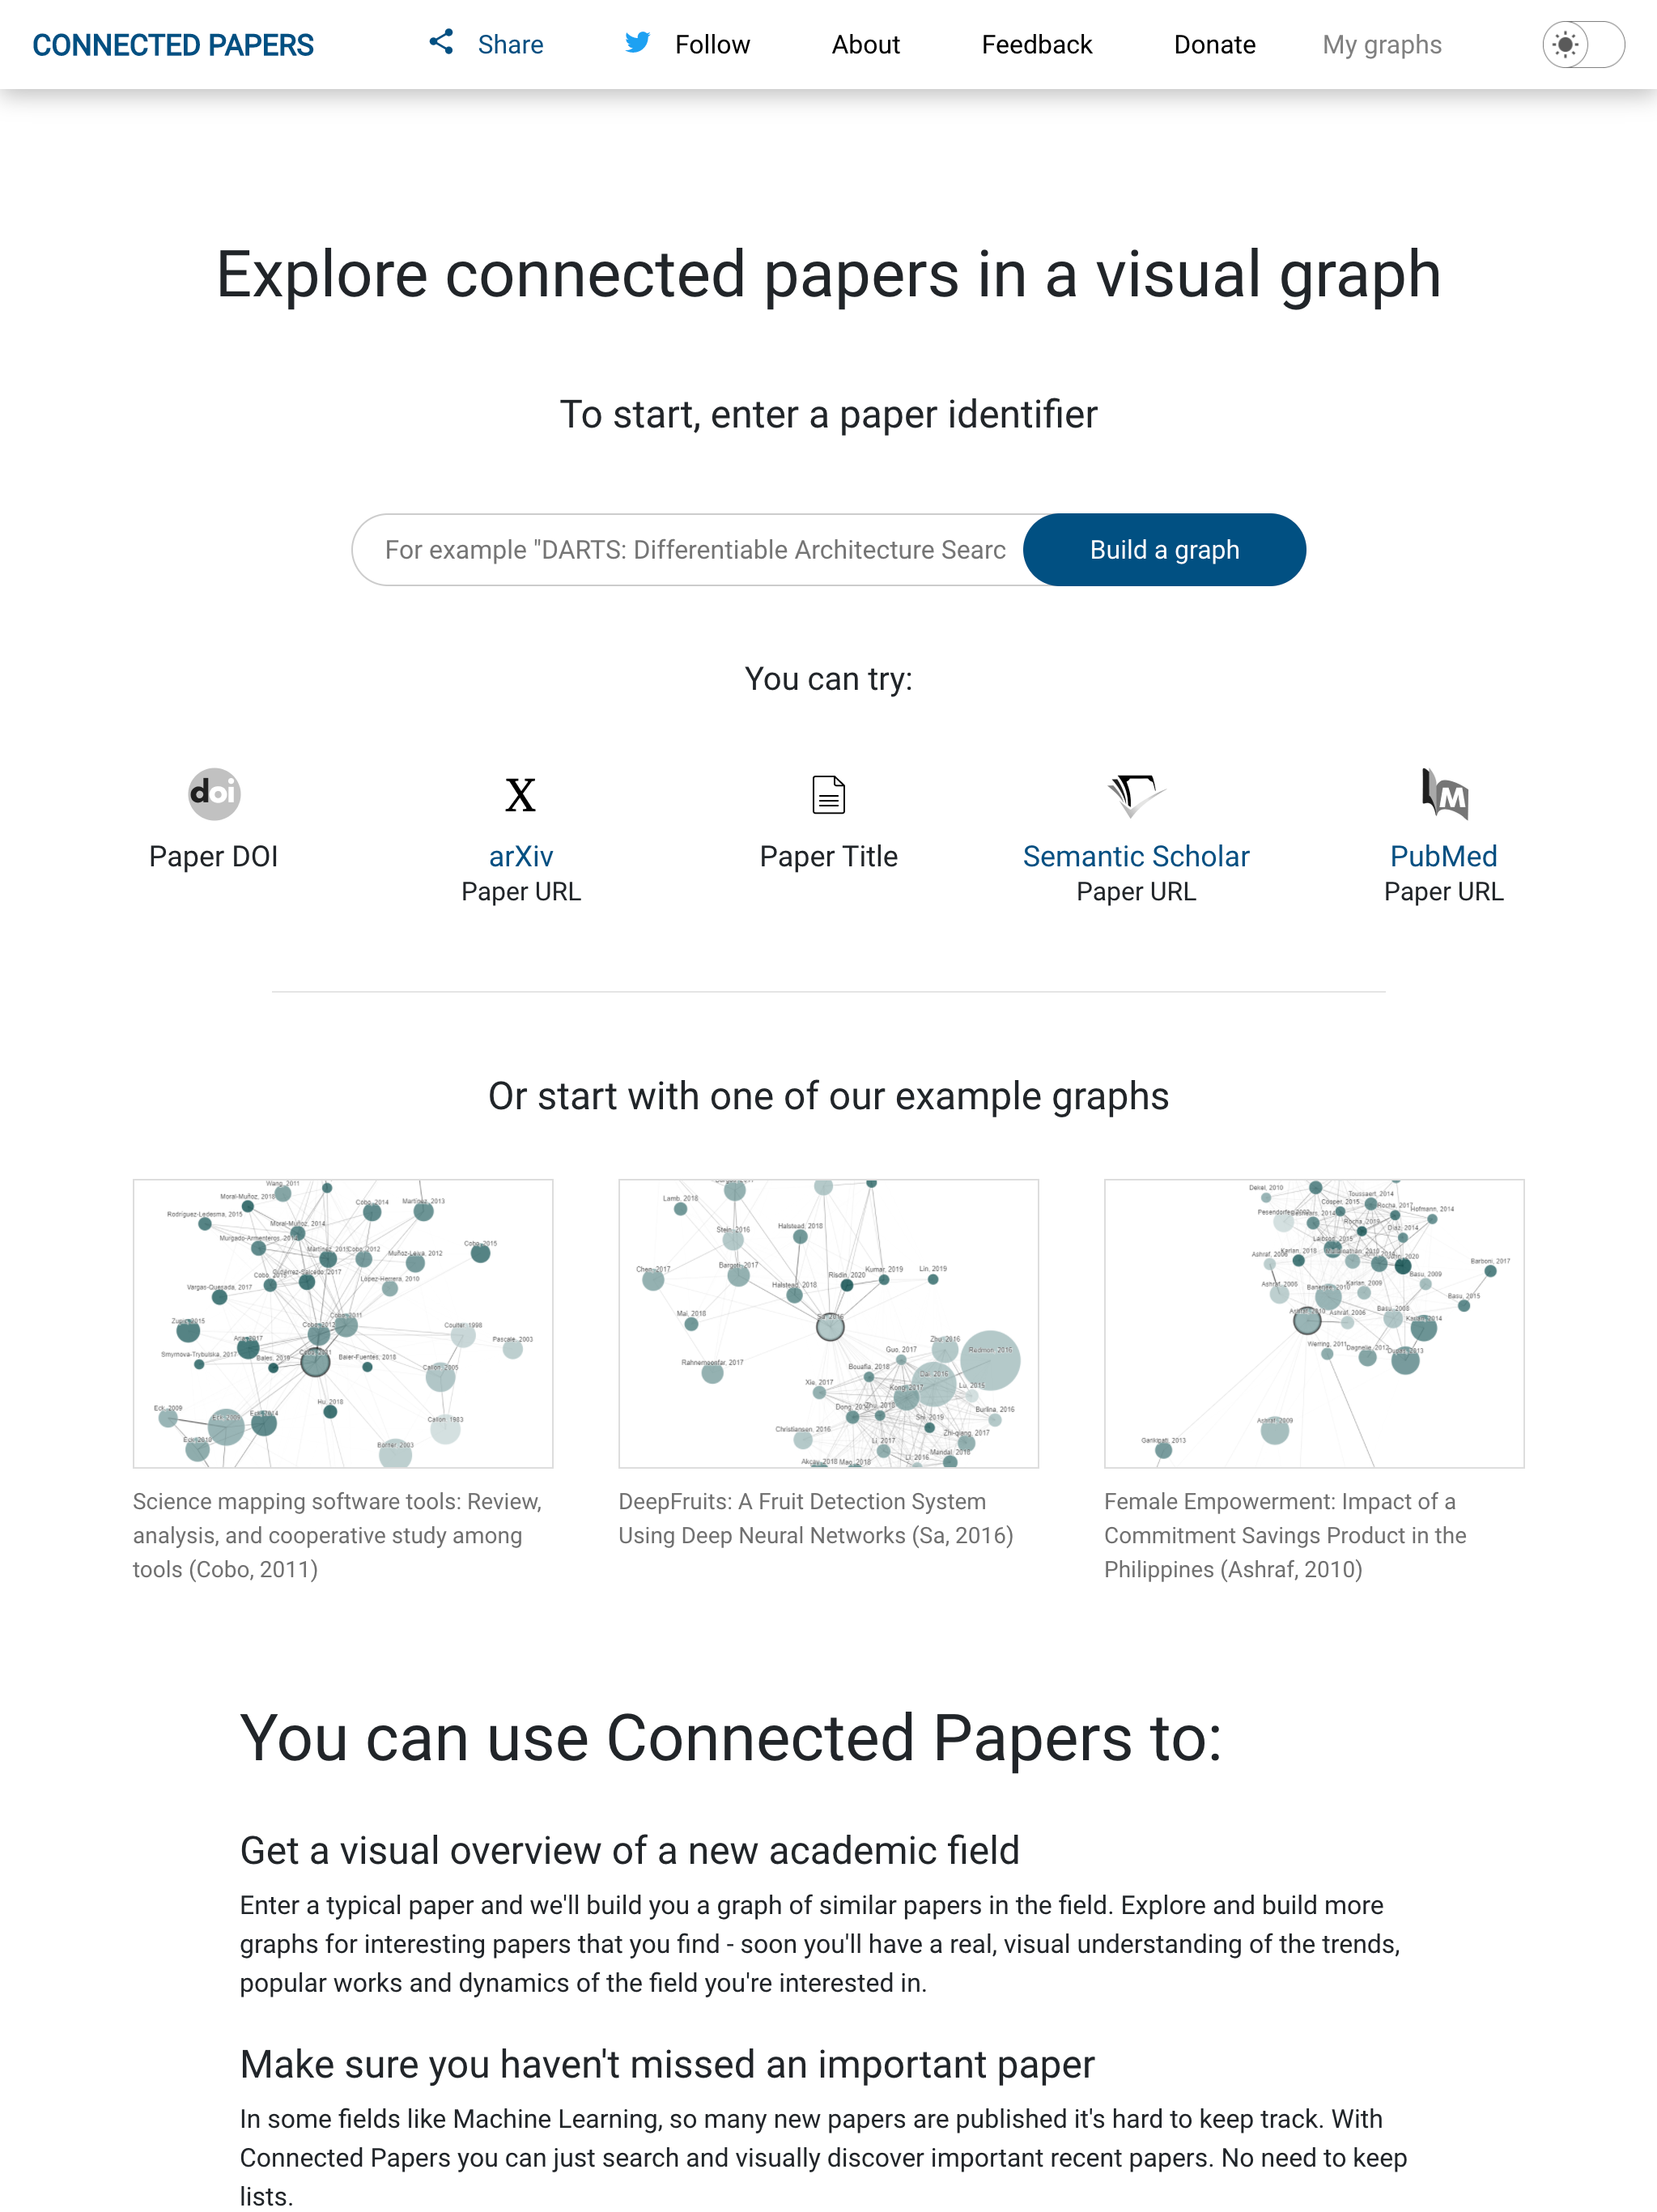 Connected Papers